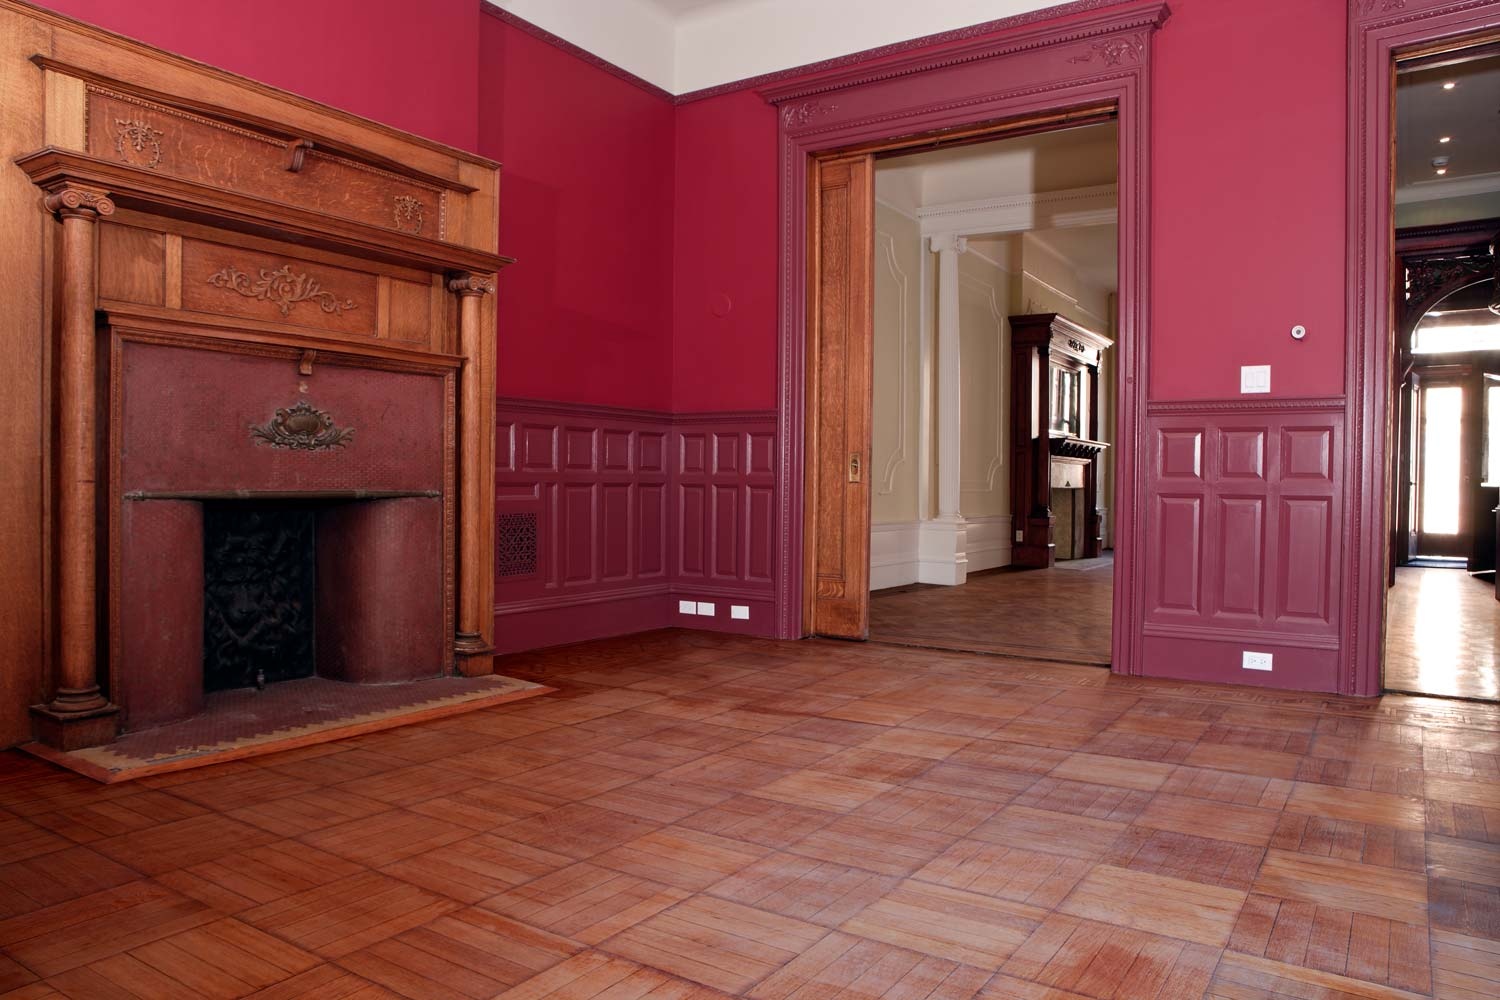 OCV meticulously restored wood details and decorative elements.